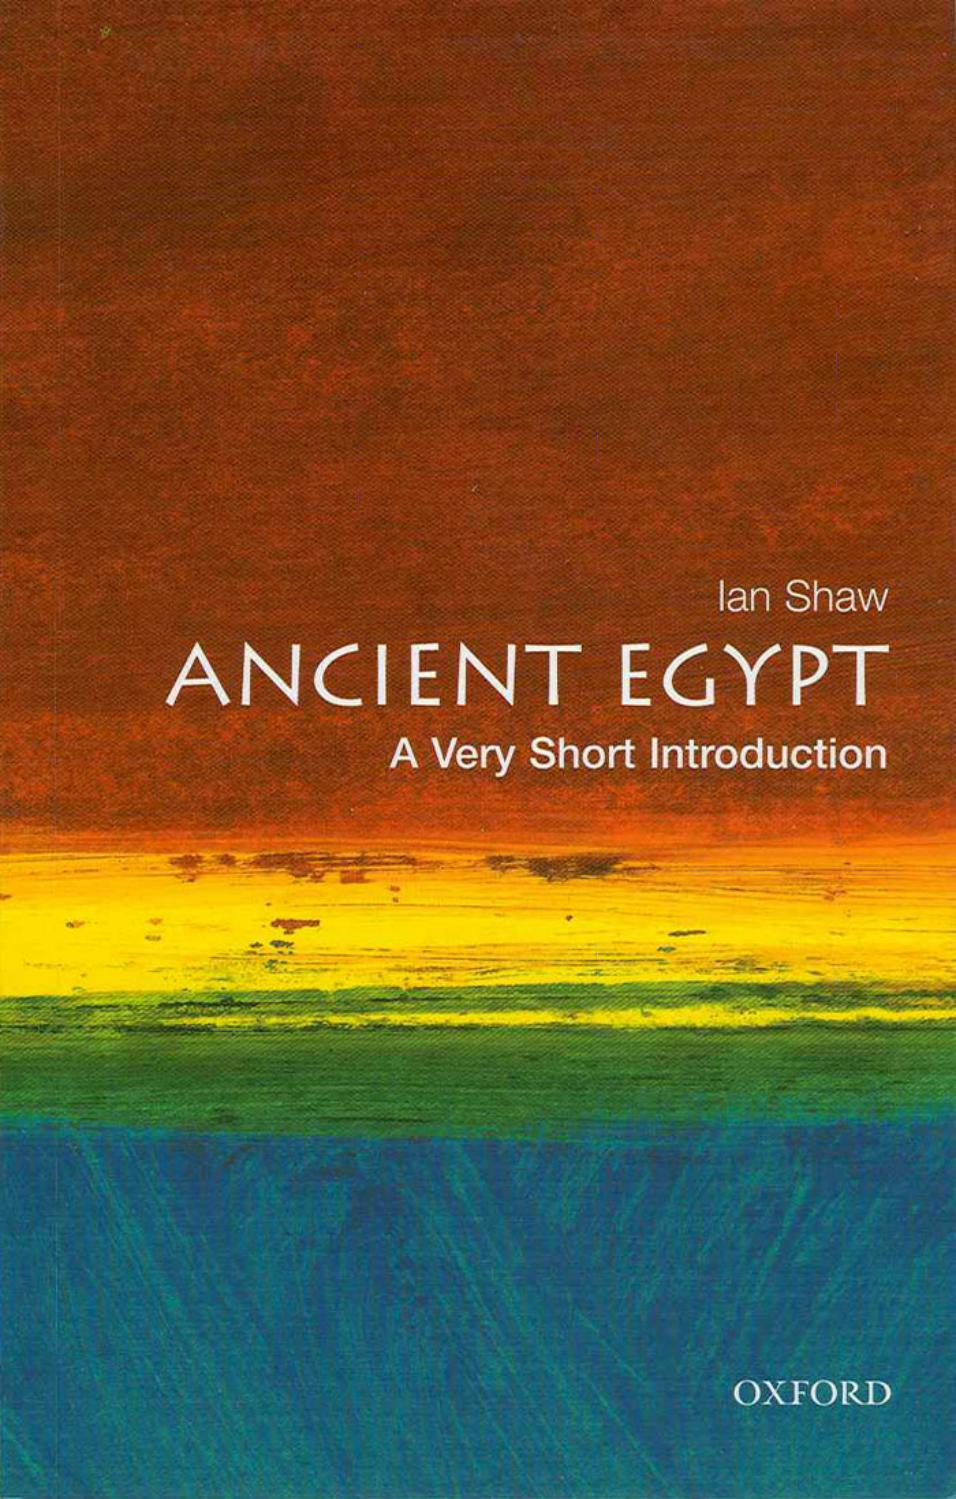 Ancient Egypt A Very Short Introduction Ian Shaw Oxford University Press By 김형률 Issuu